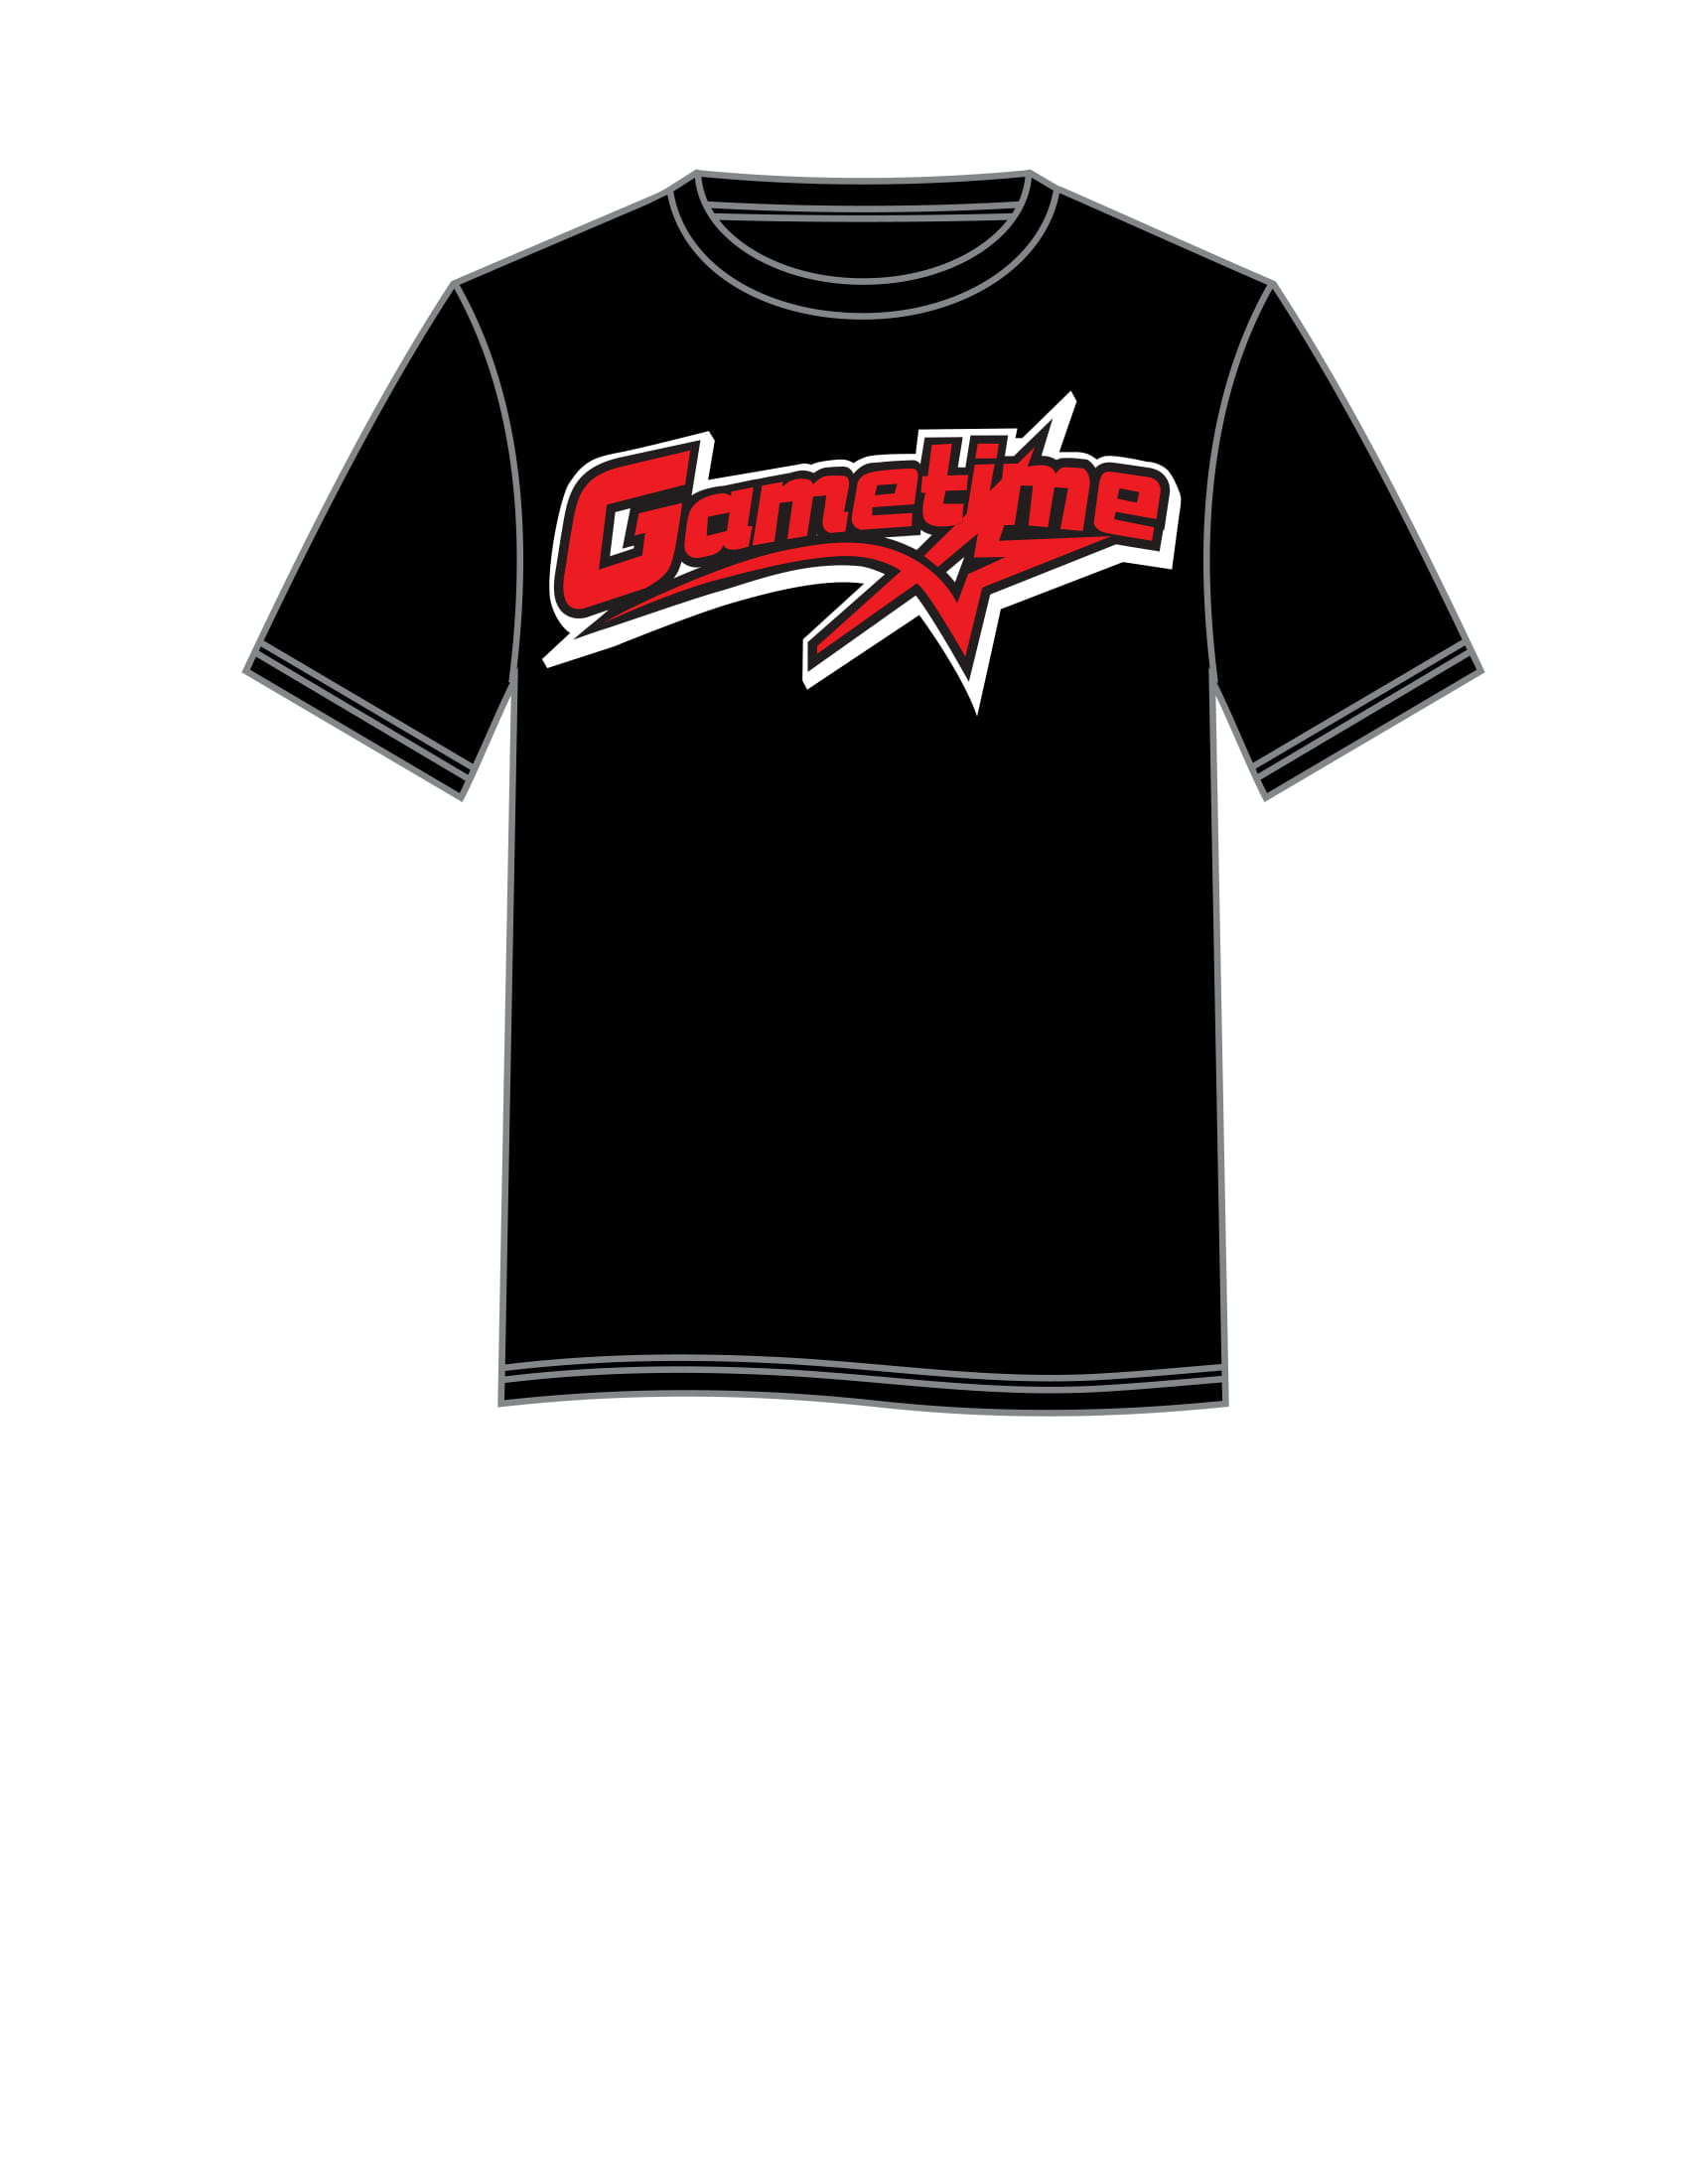 GAMETIME short sleeve tee